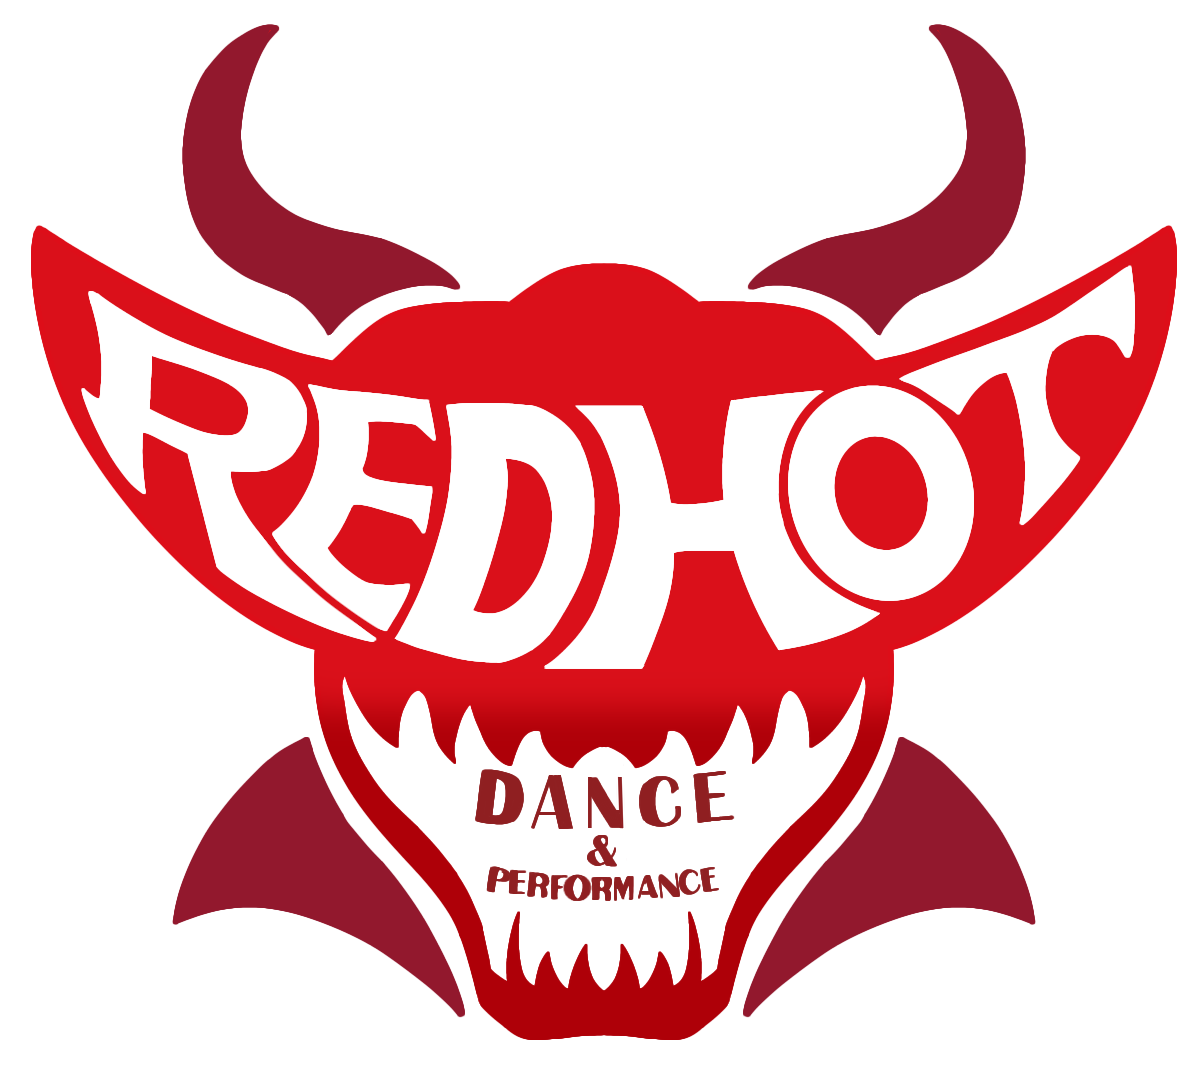 Team Red Hot